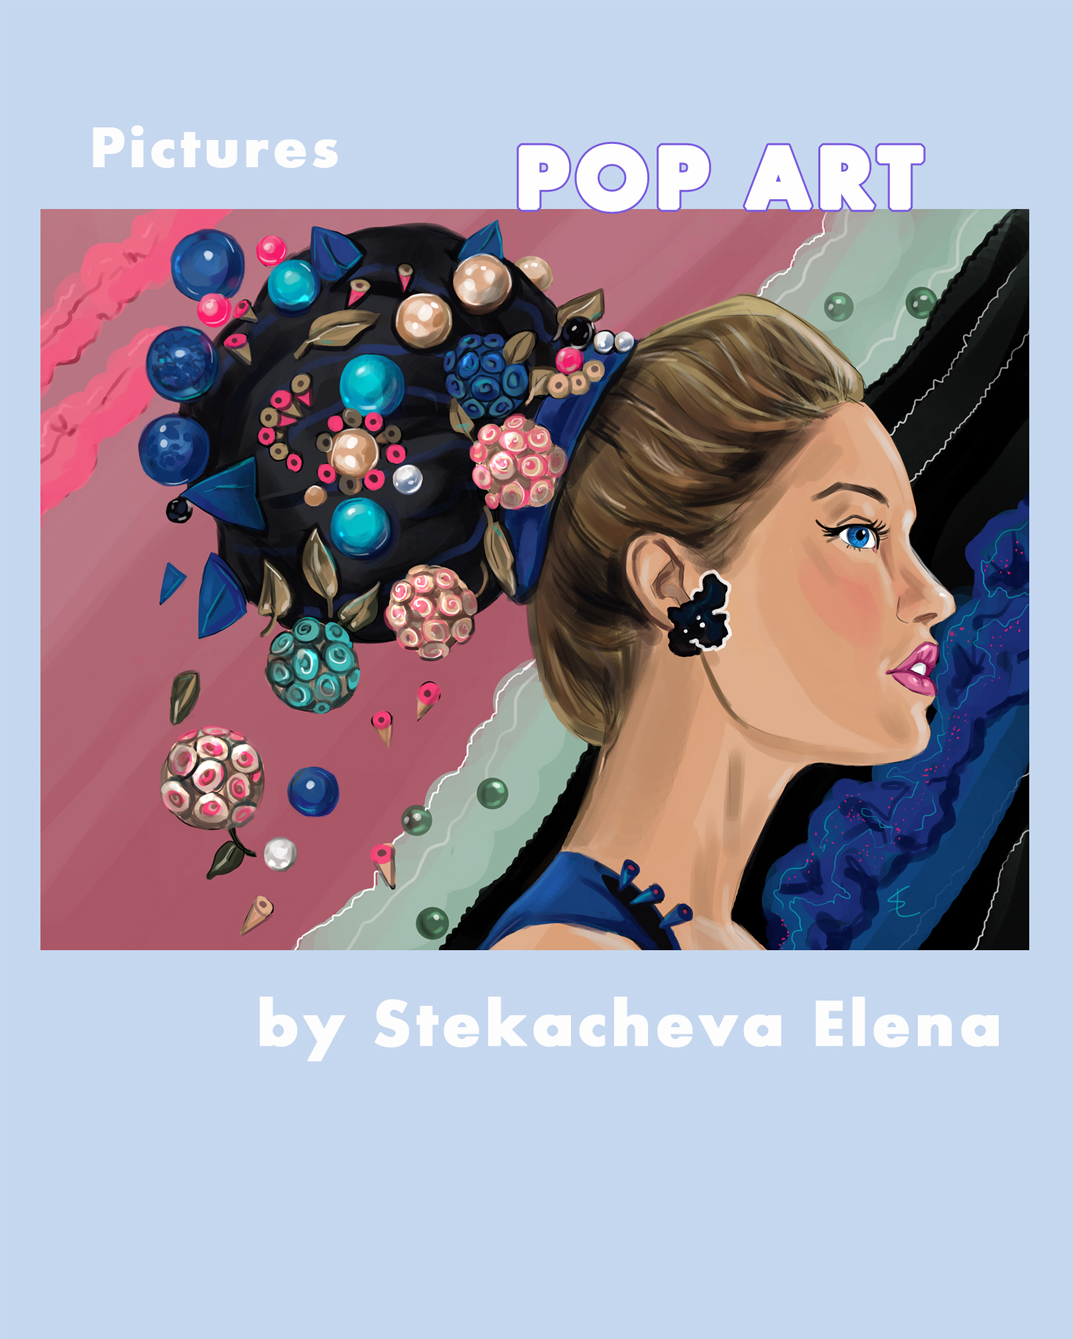 POP ART 2D. Catalogue of paintings by Stekacheva Elena.